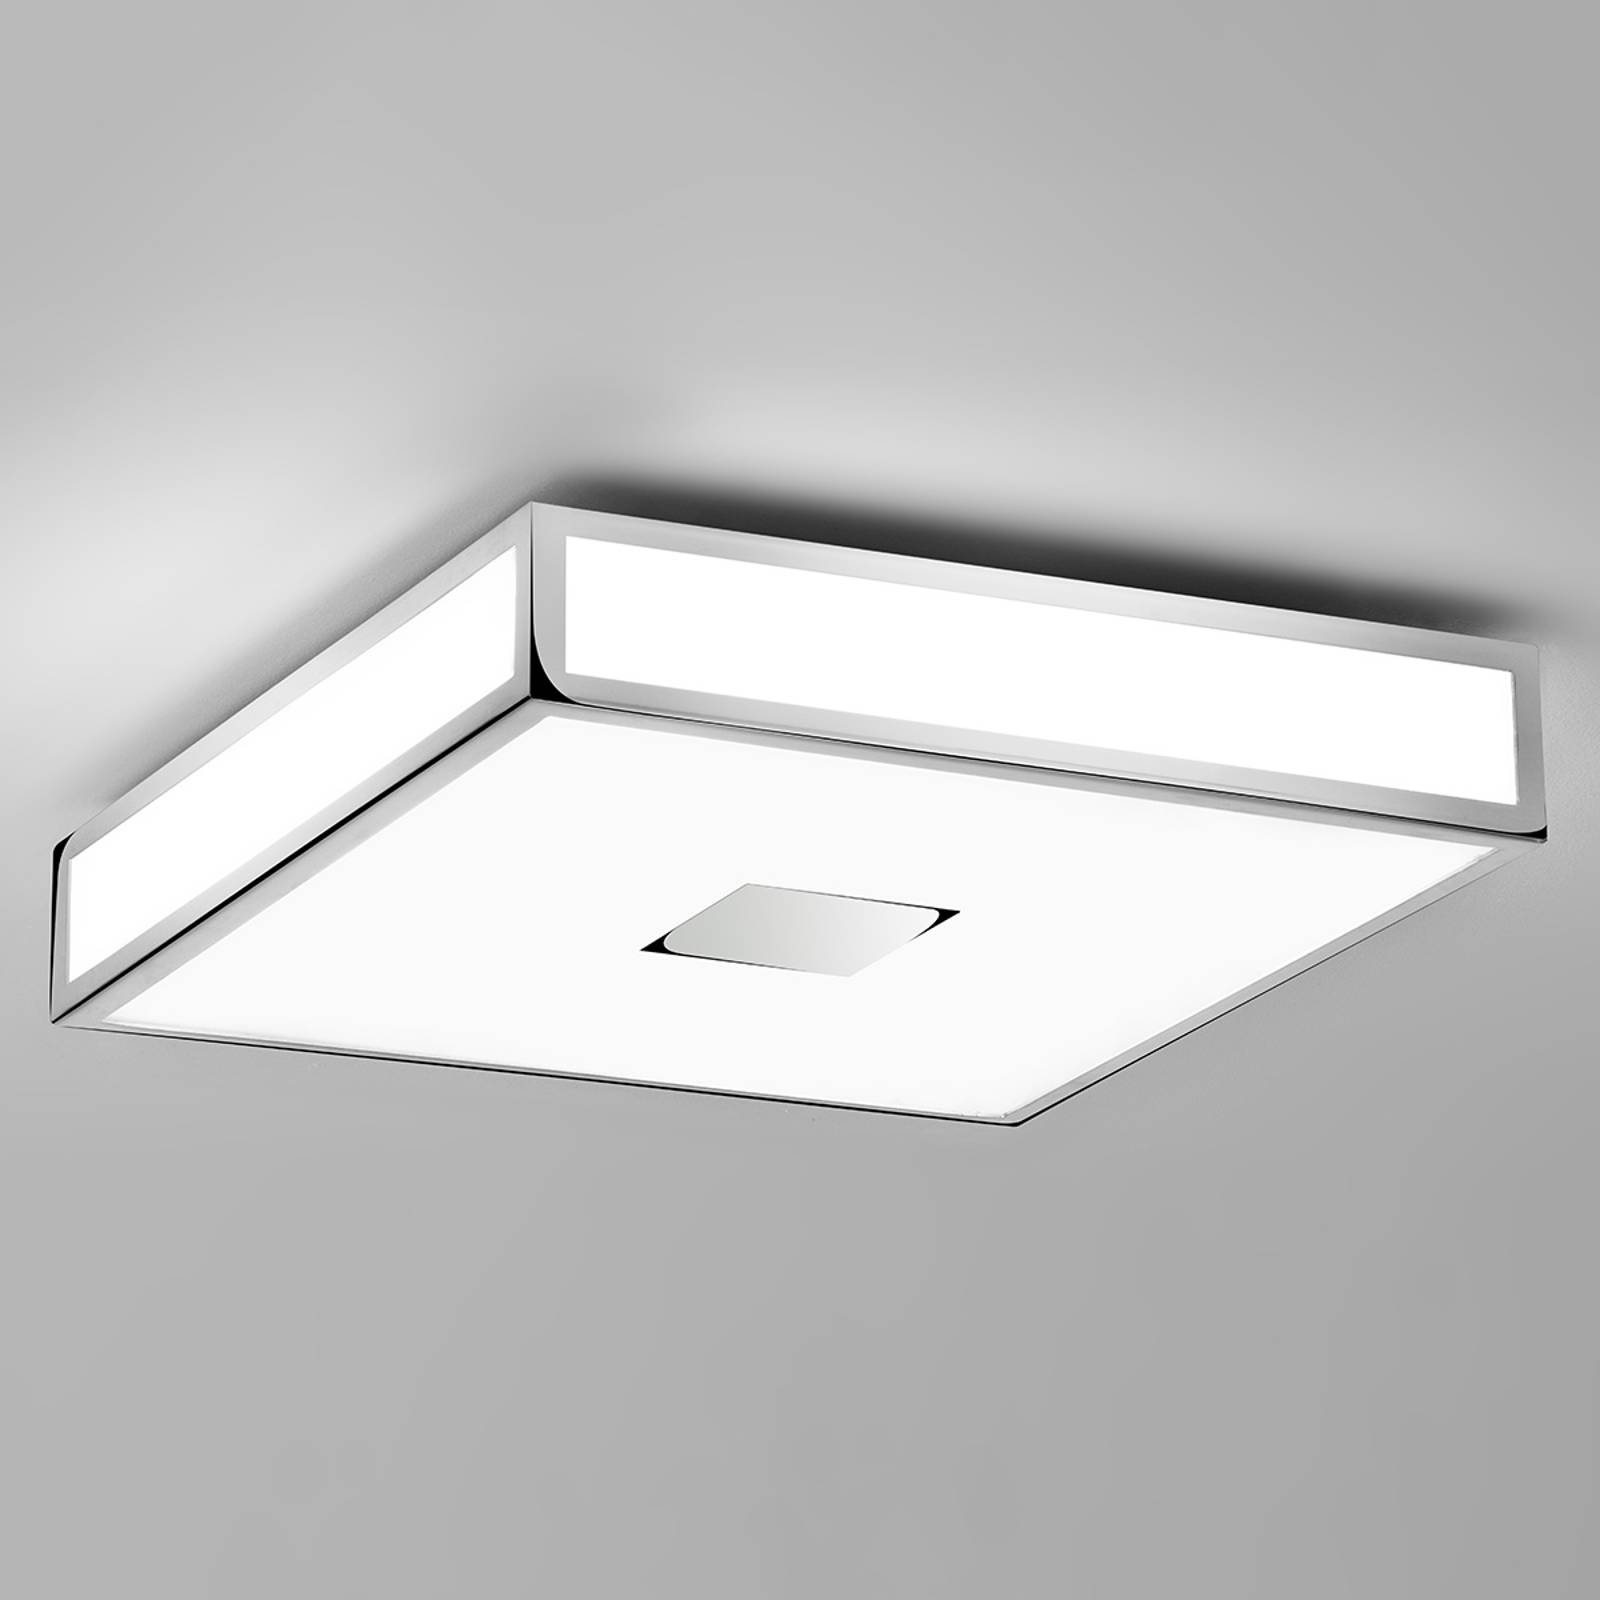 Astro Mashiko bathroom ceiling light 40 x 40 cm from ASTRO